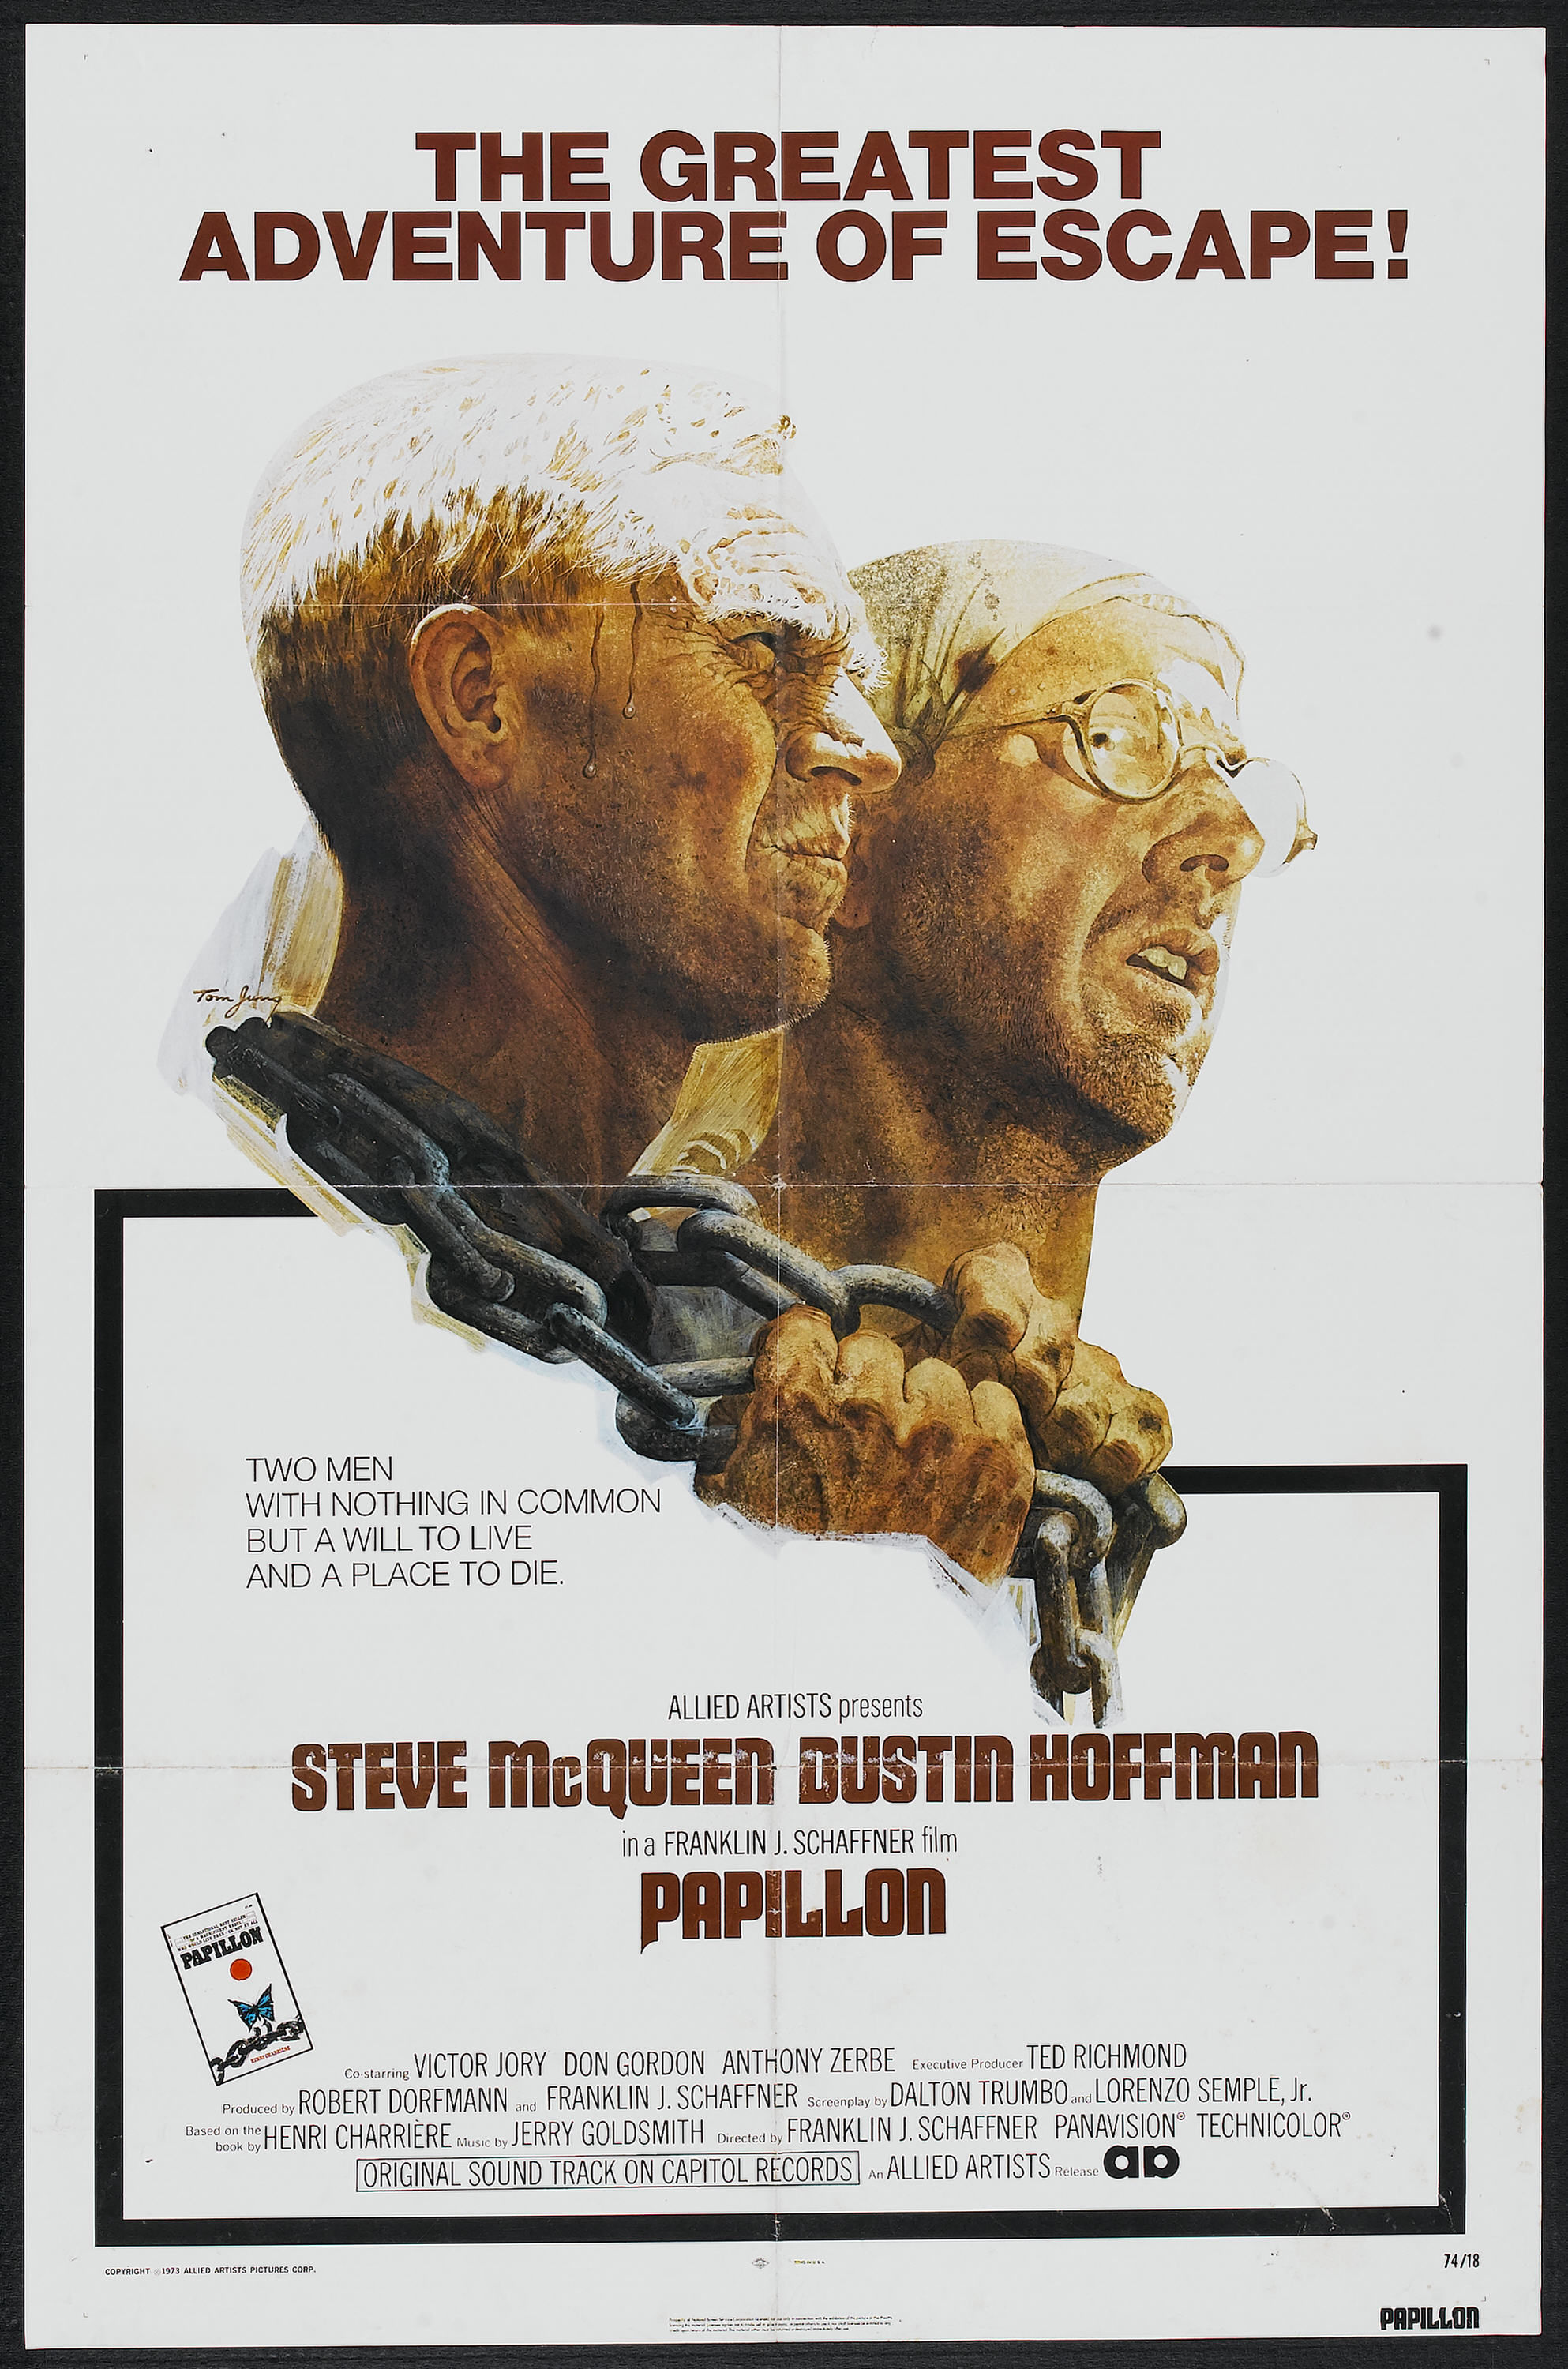 Steve McQueen has tended to portray resolute characters who are not willing to be subjugated. (PIcture courtesy limitedruns.com).